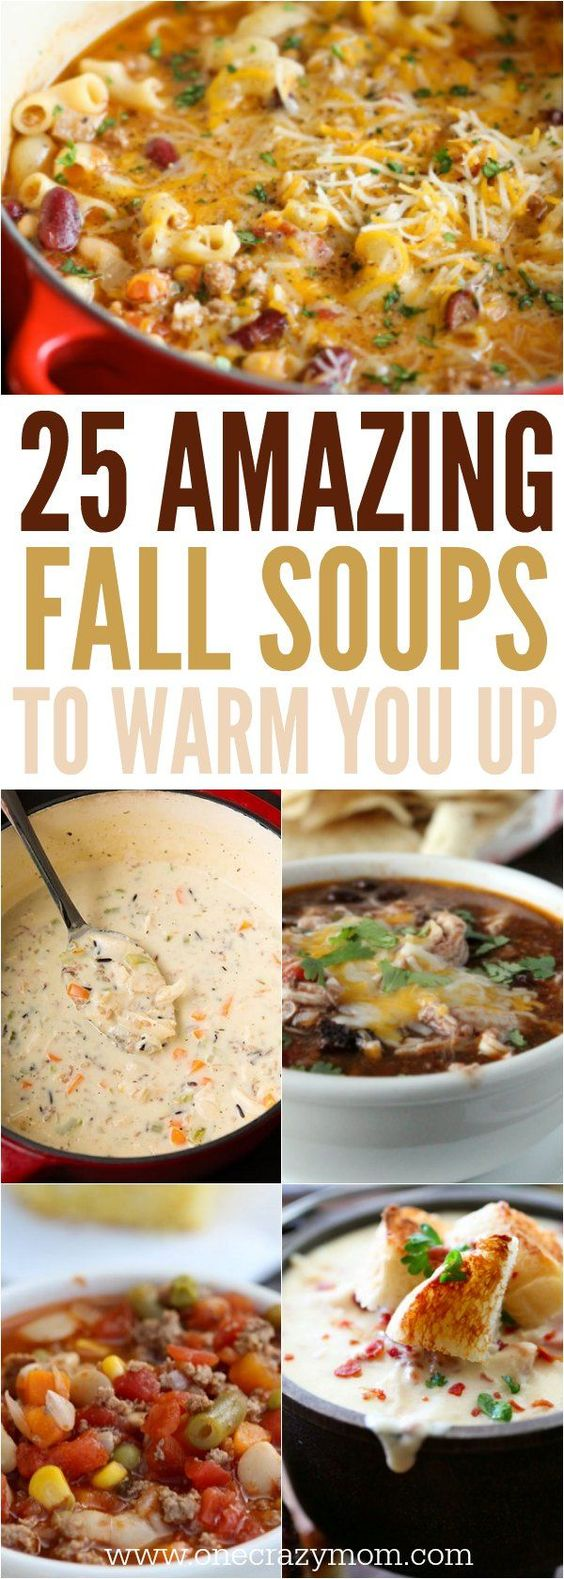 Here are yummy fall soup recipes to make when the weather starts cooling down. 25 recipes that the entire family will love! http://healthyquickly.com/healthy-soup-recipes-for-weight-loss/